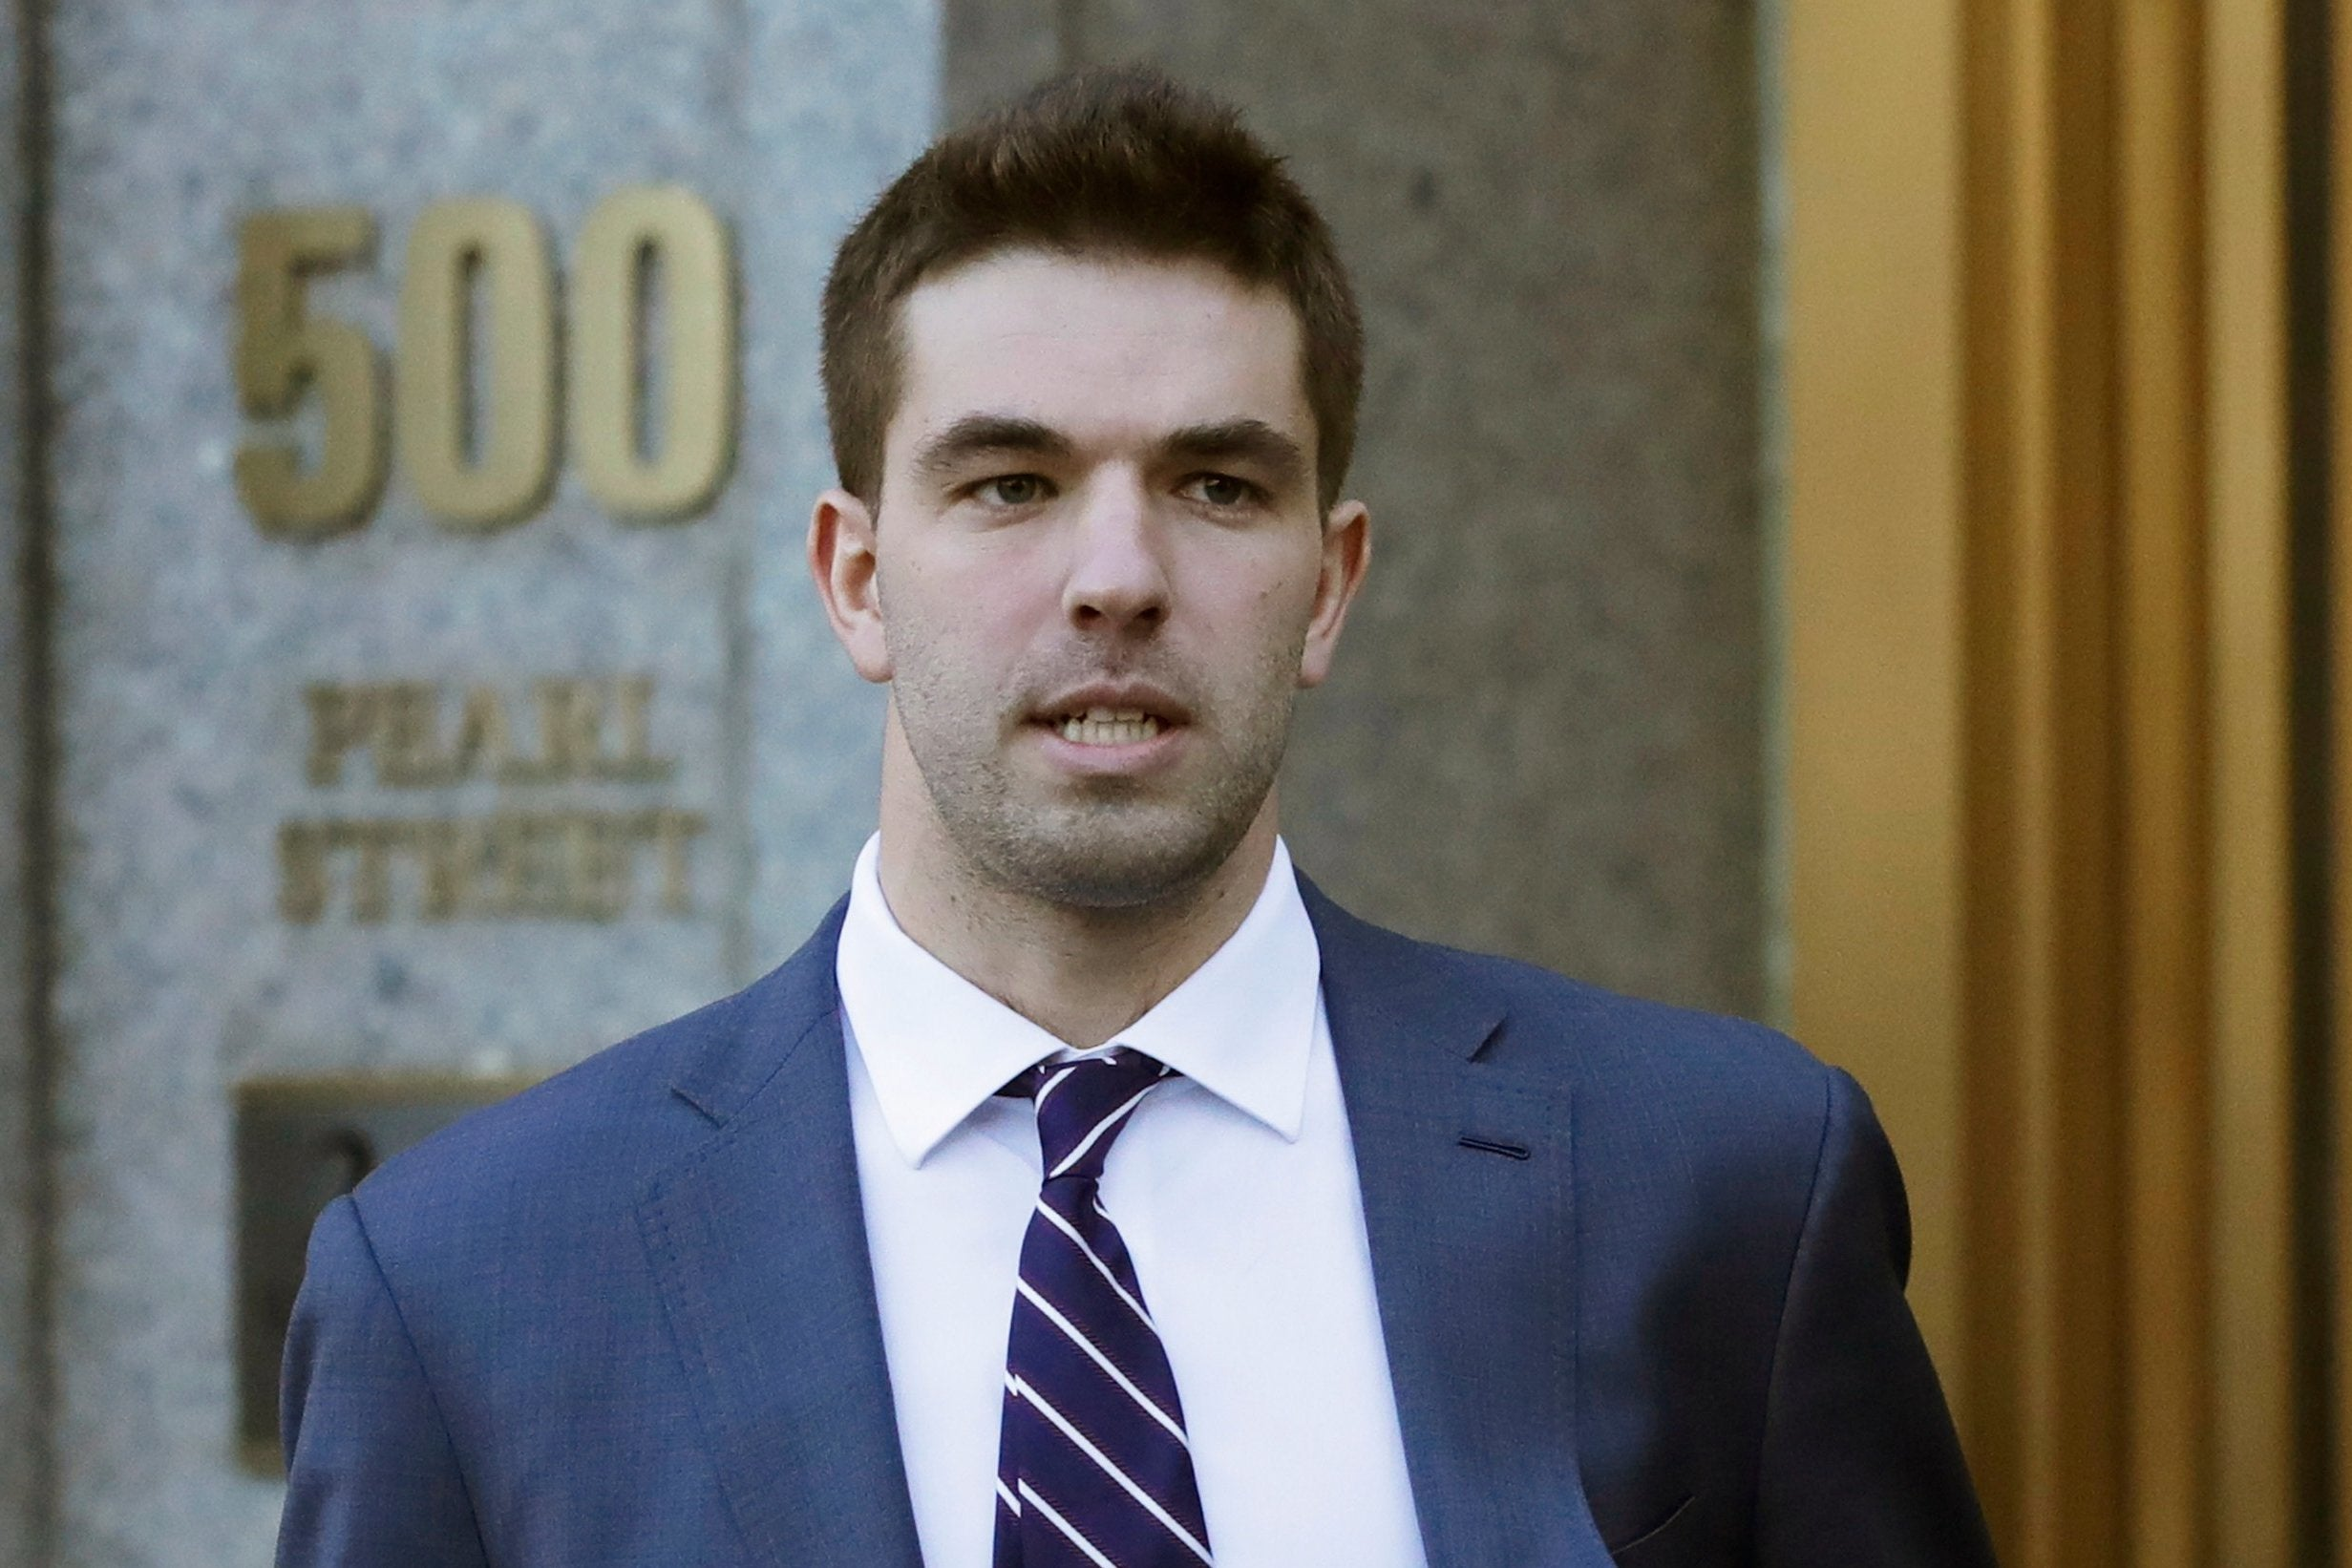 Fyre Festival founder Billy McFarland jailed for six years